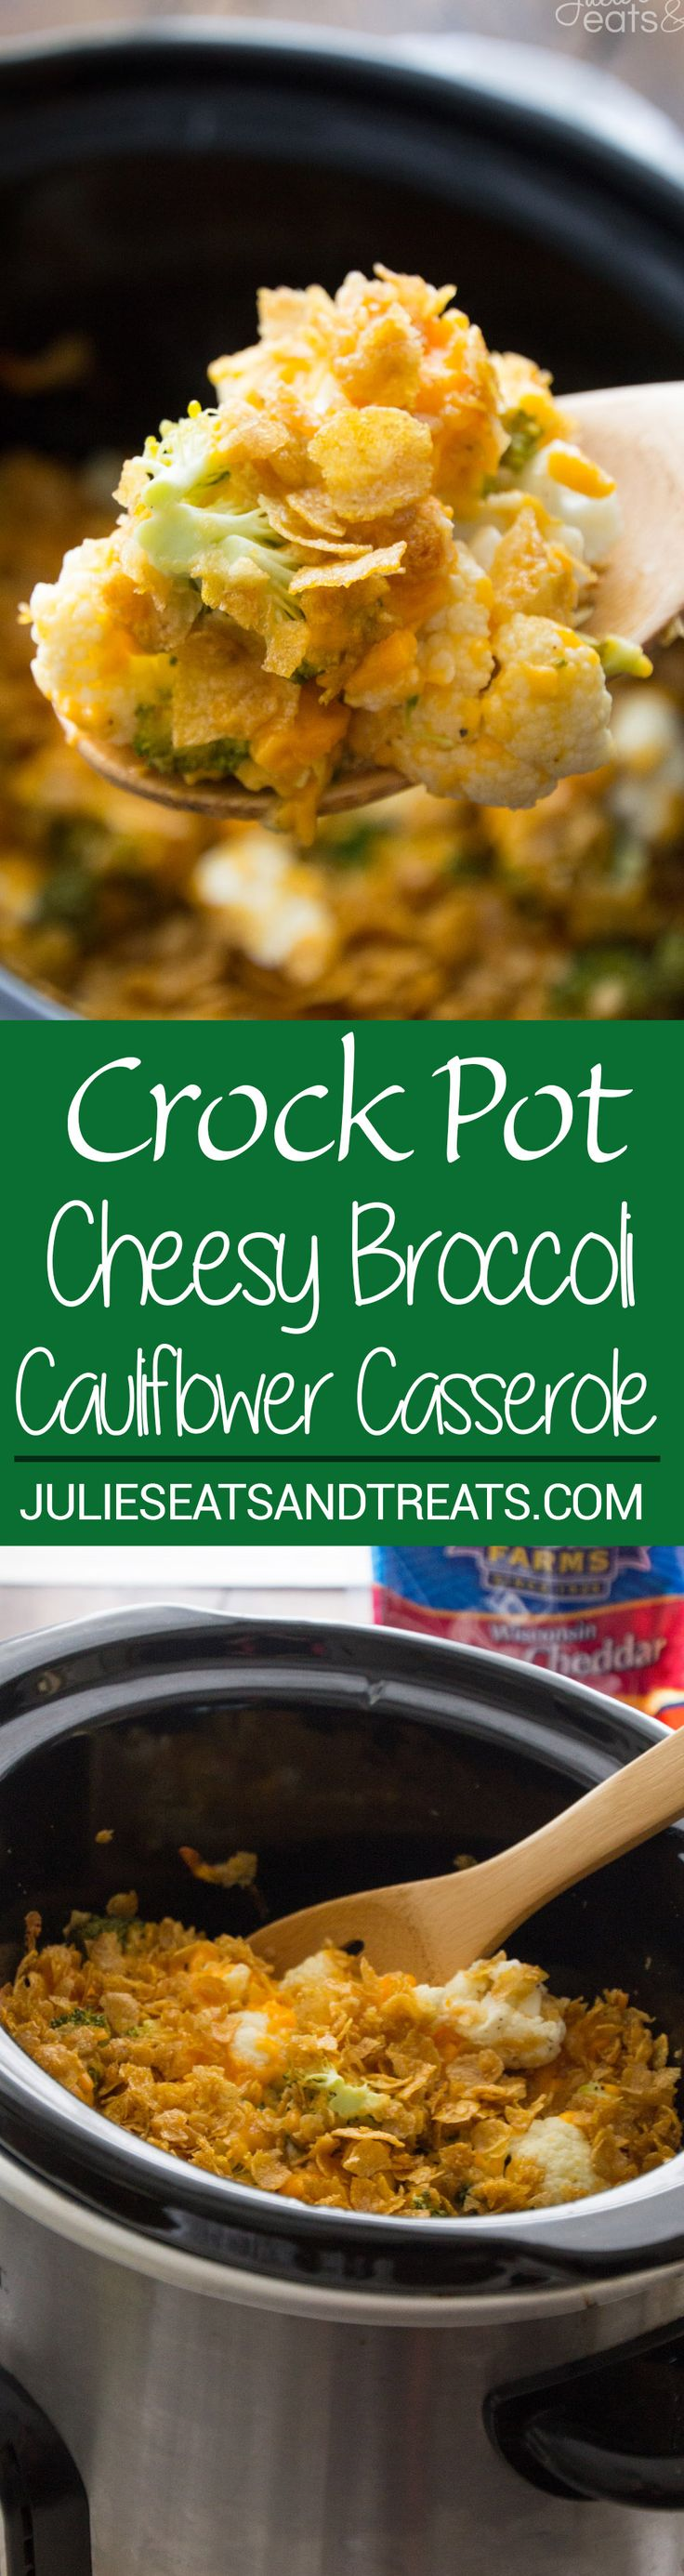 Crock Pot Cauliflower Broccoli Casserole Recipe ~ The Perfect Side Dish Recipe in your Slow Cooker! Broccoli and Cauliflower Smothered in Cheese and Topped with Corn Flakes! on MyRecipeMagic.com